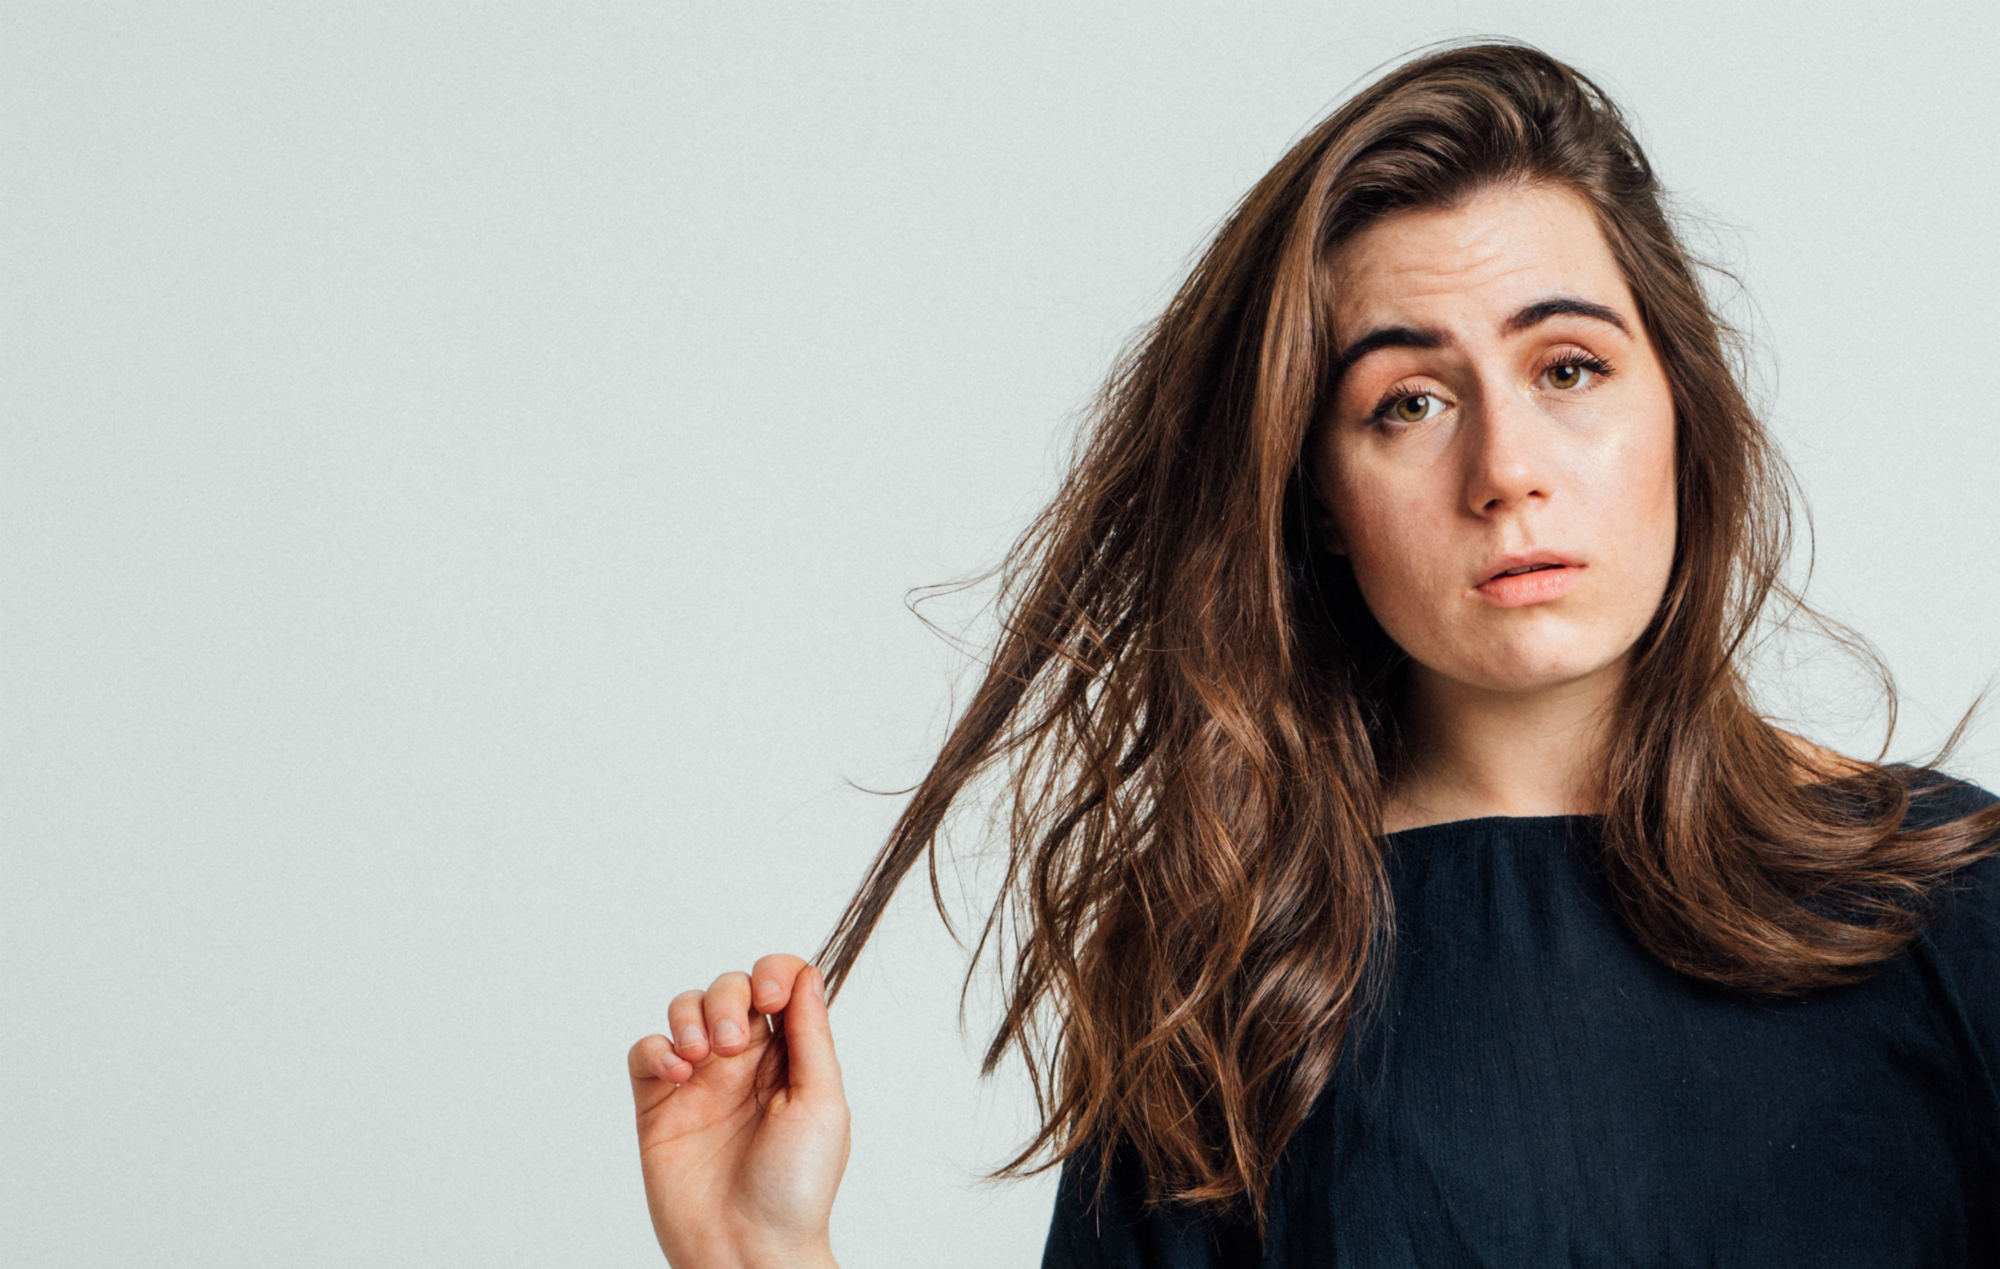 NME Festival blog: Dodie announces UK tour, new single 'Human' and EP release